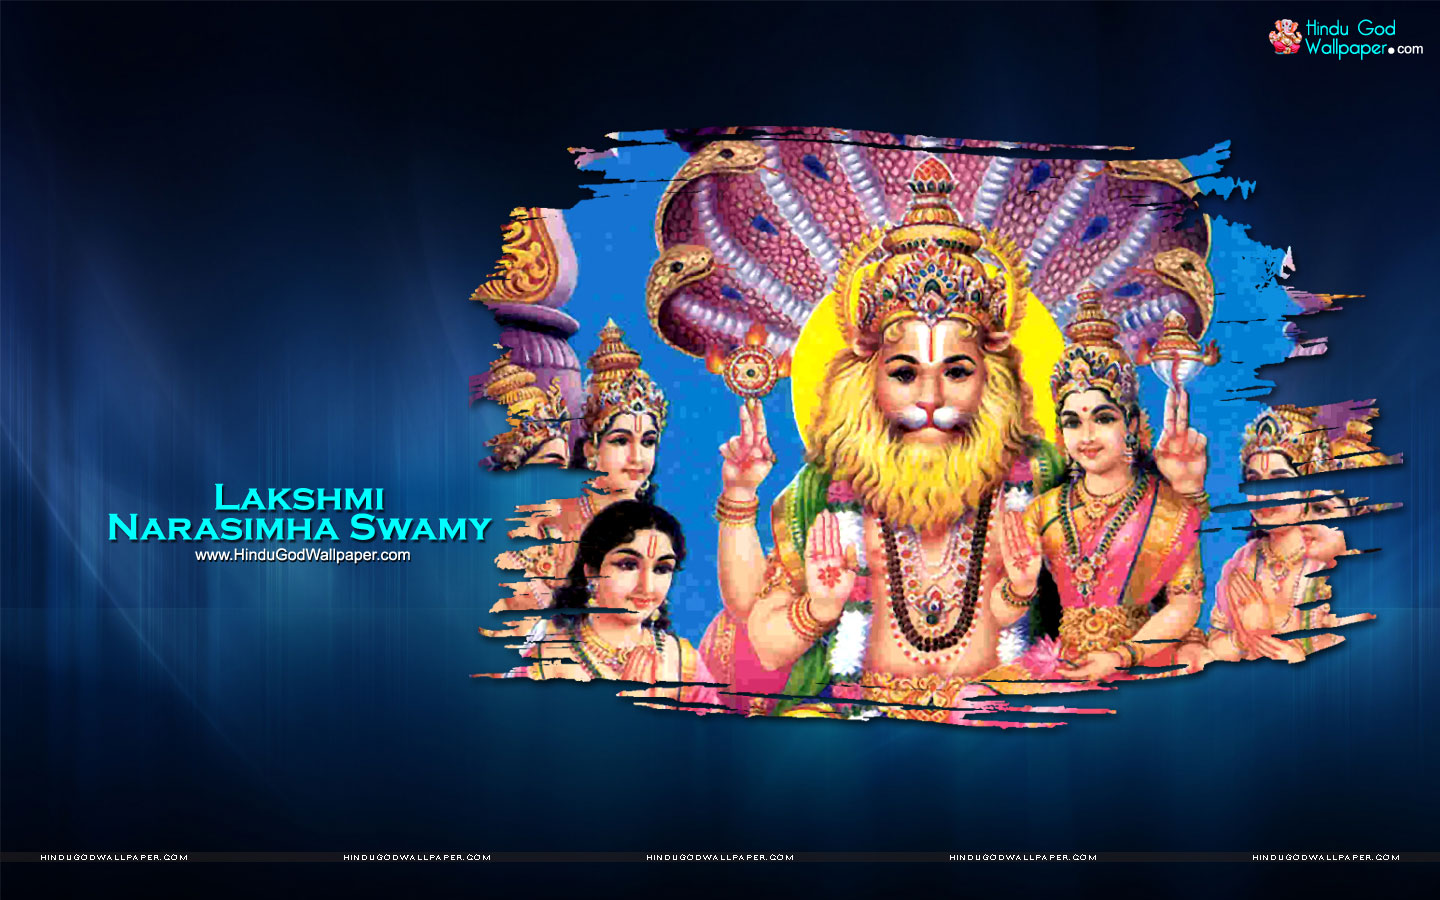 Lakshmi Narasimha Swamy Hd Wallpapers Free Download